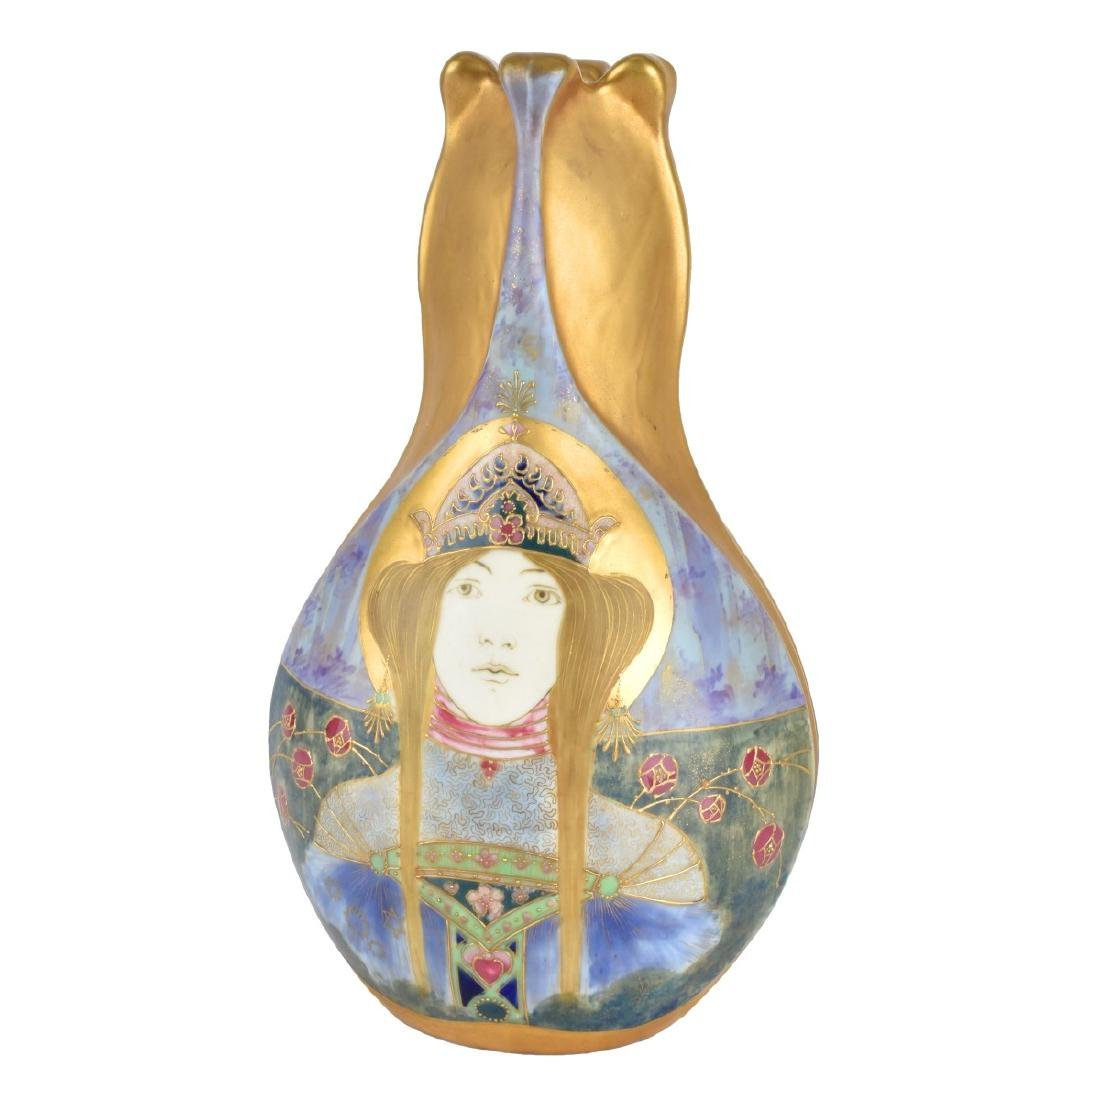 Amphora Turn Teplitz Princess Vase